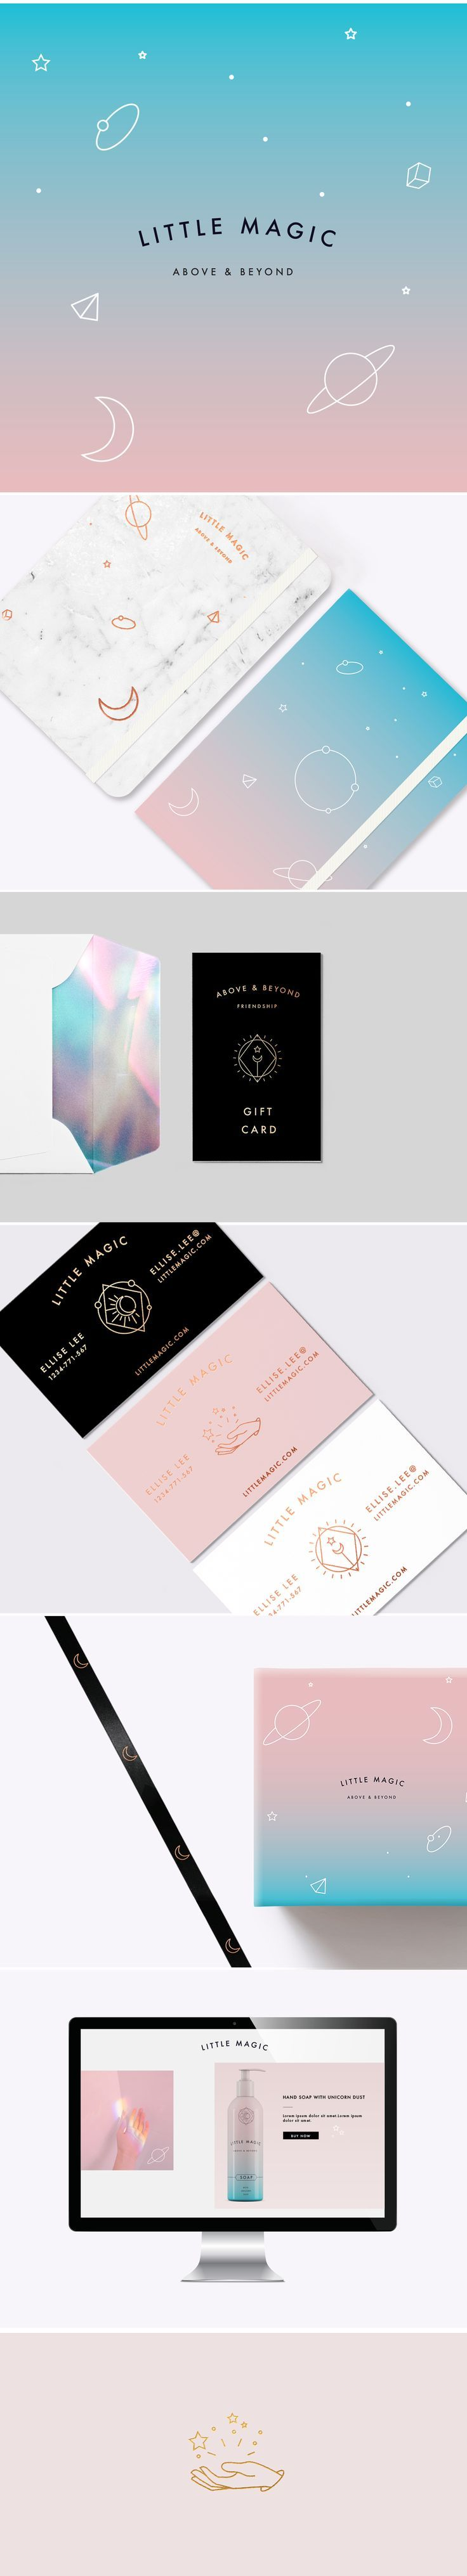 Exclusive brand concept and branding package. Available   loolaadesigns.com